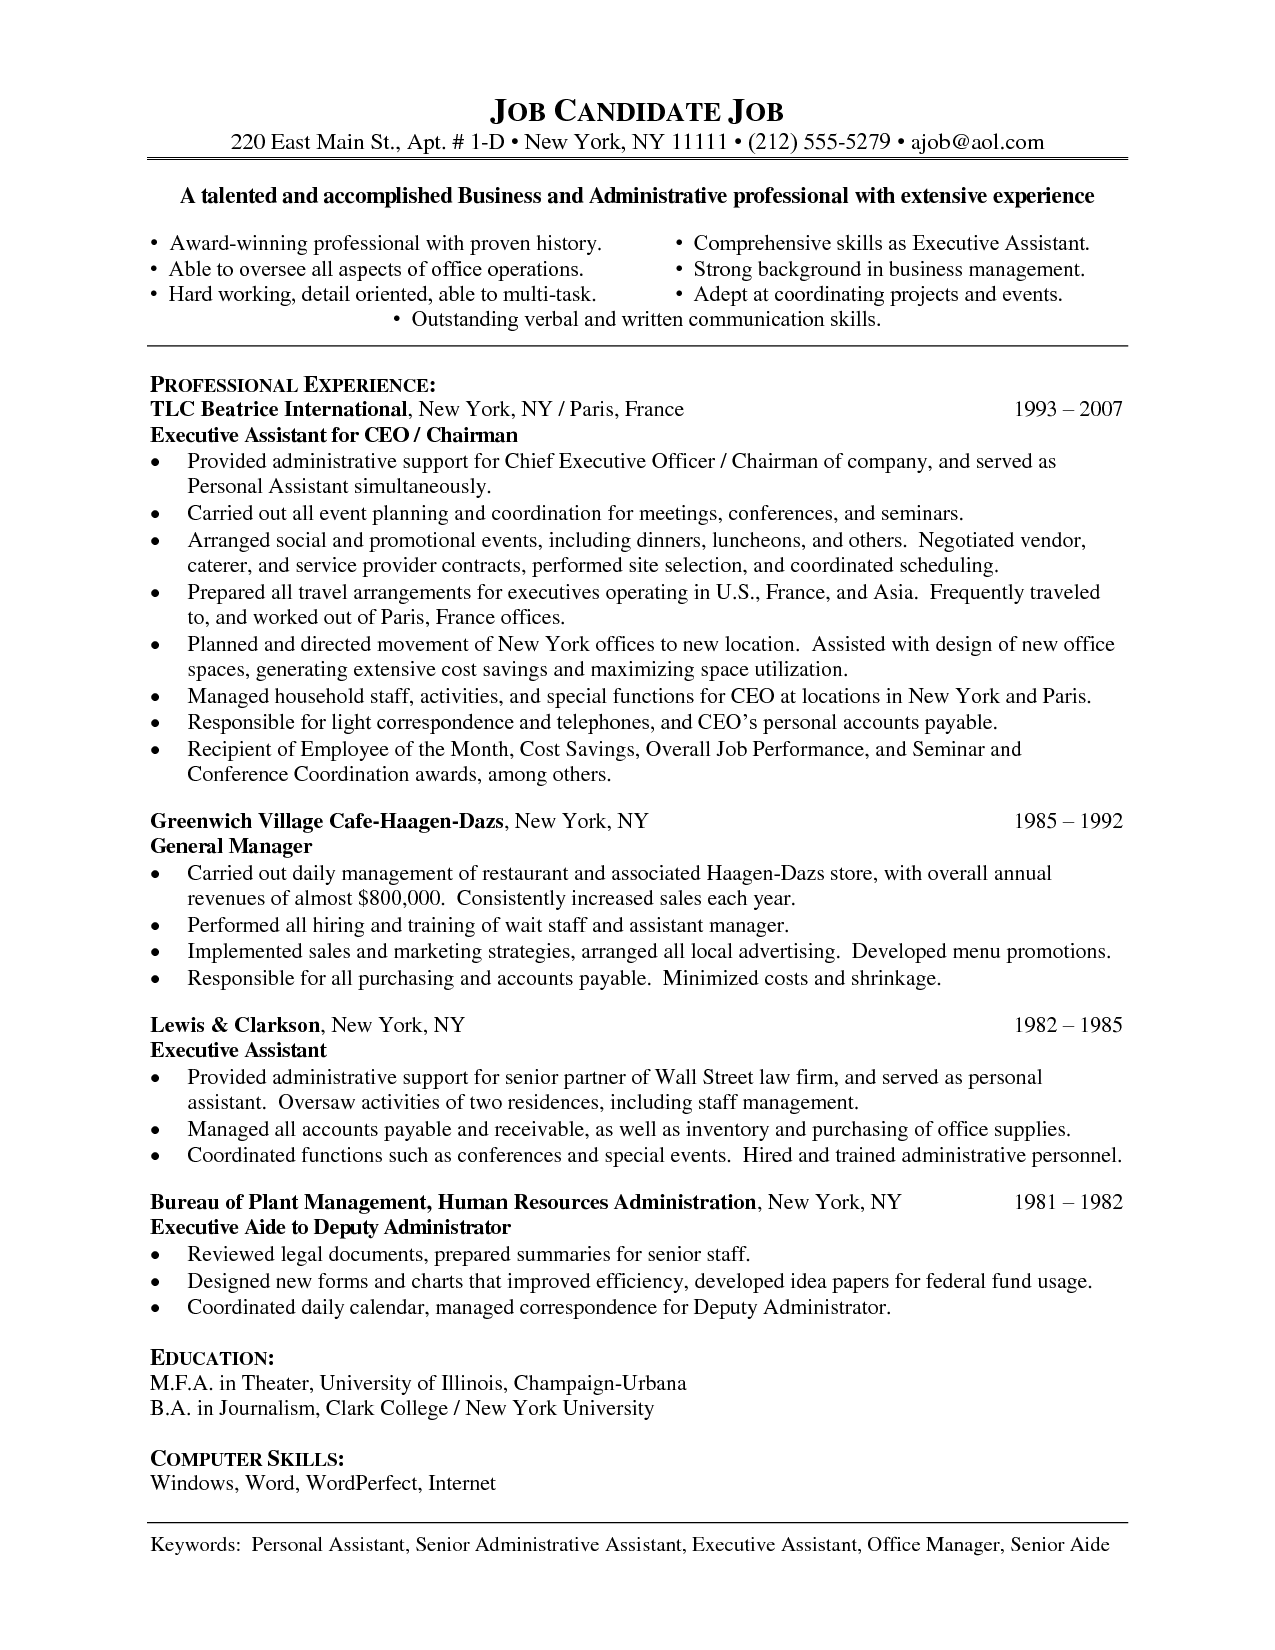 Find Resume Free Administrative Functional Resume Google Search